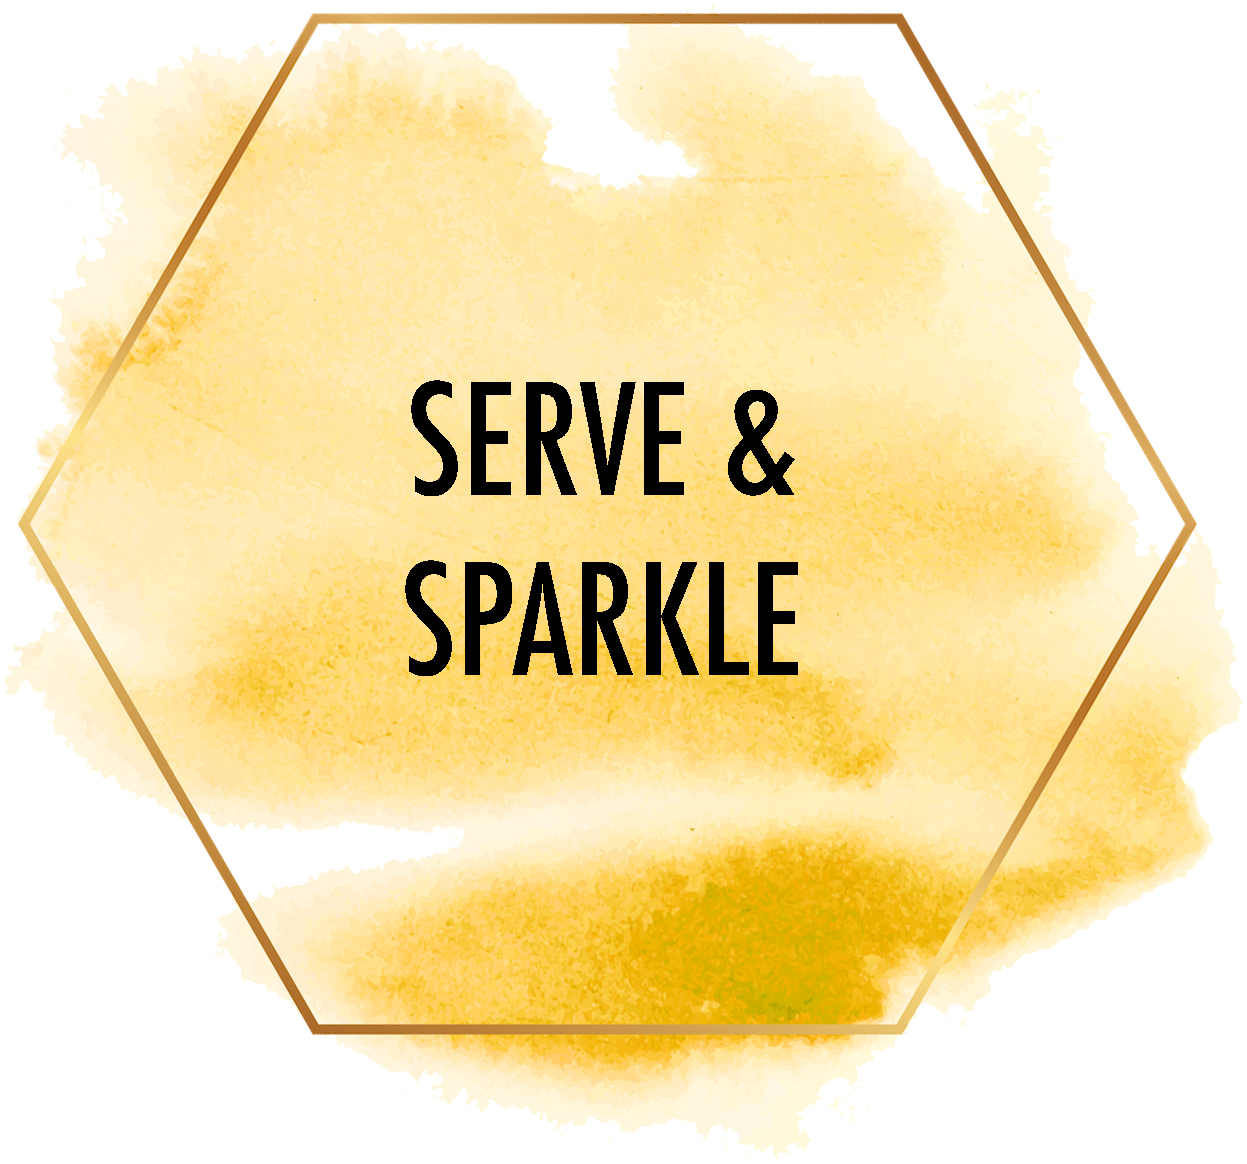 serve and sparkle.jpg